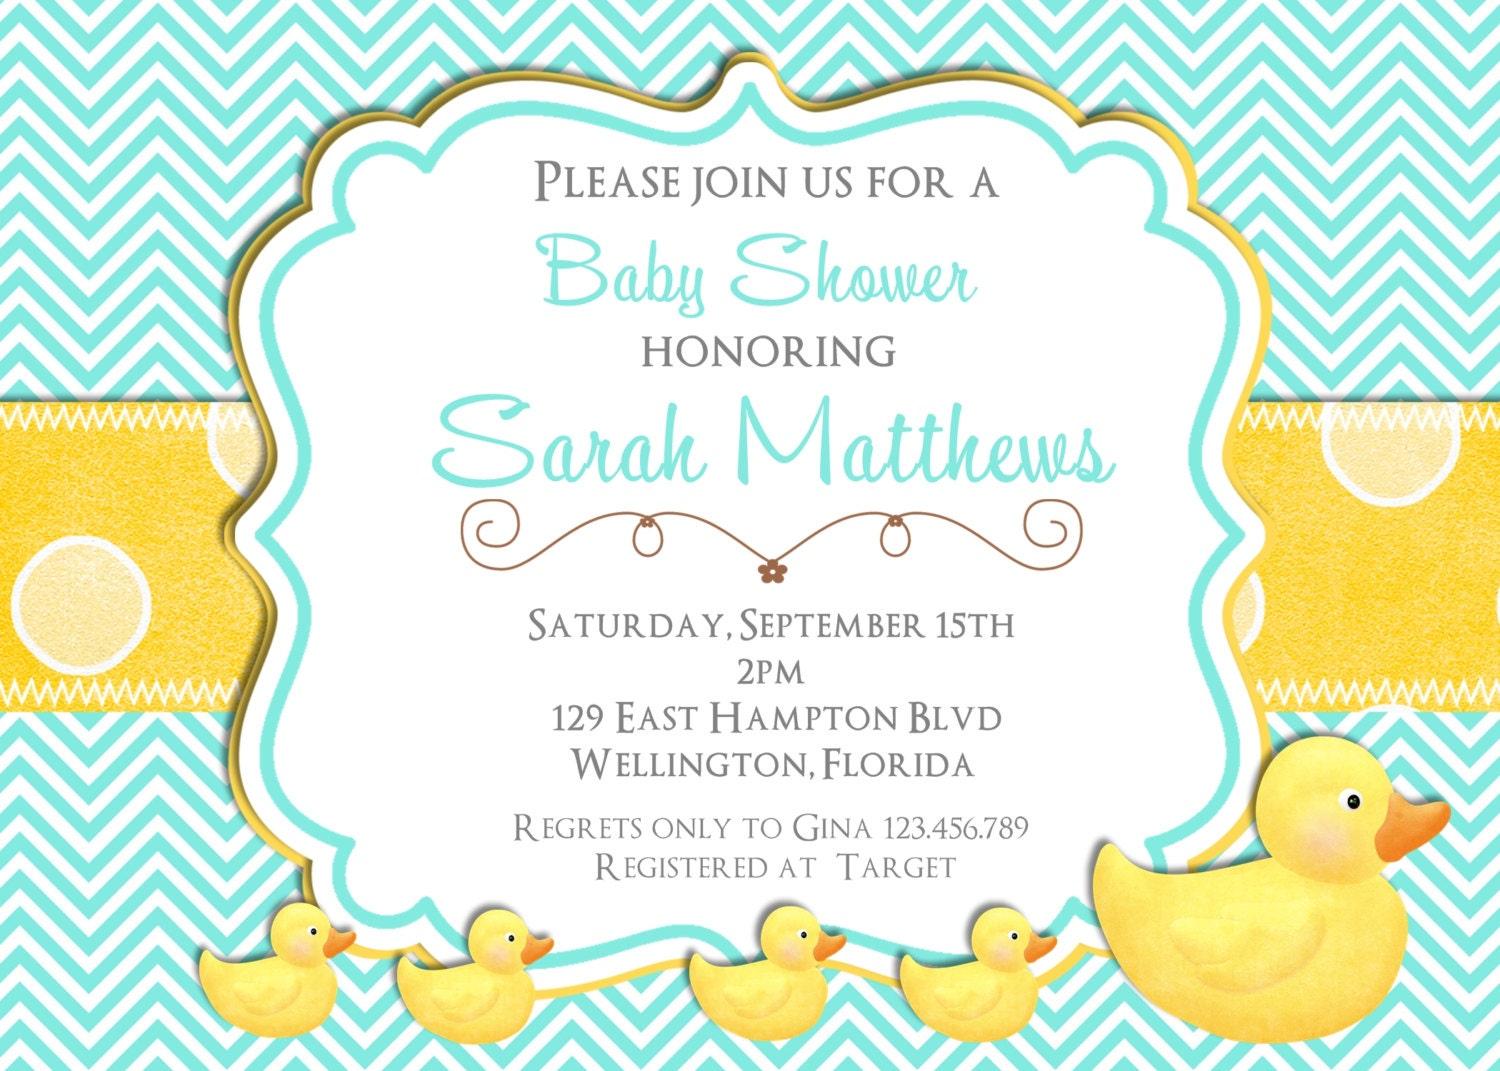 Rubber Ducky Baby Shower Invitation Teal and Yellow Chevron